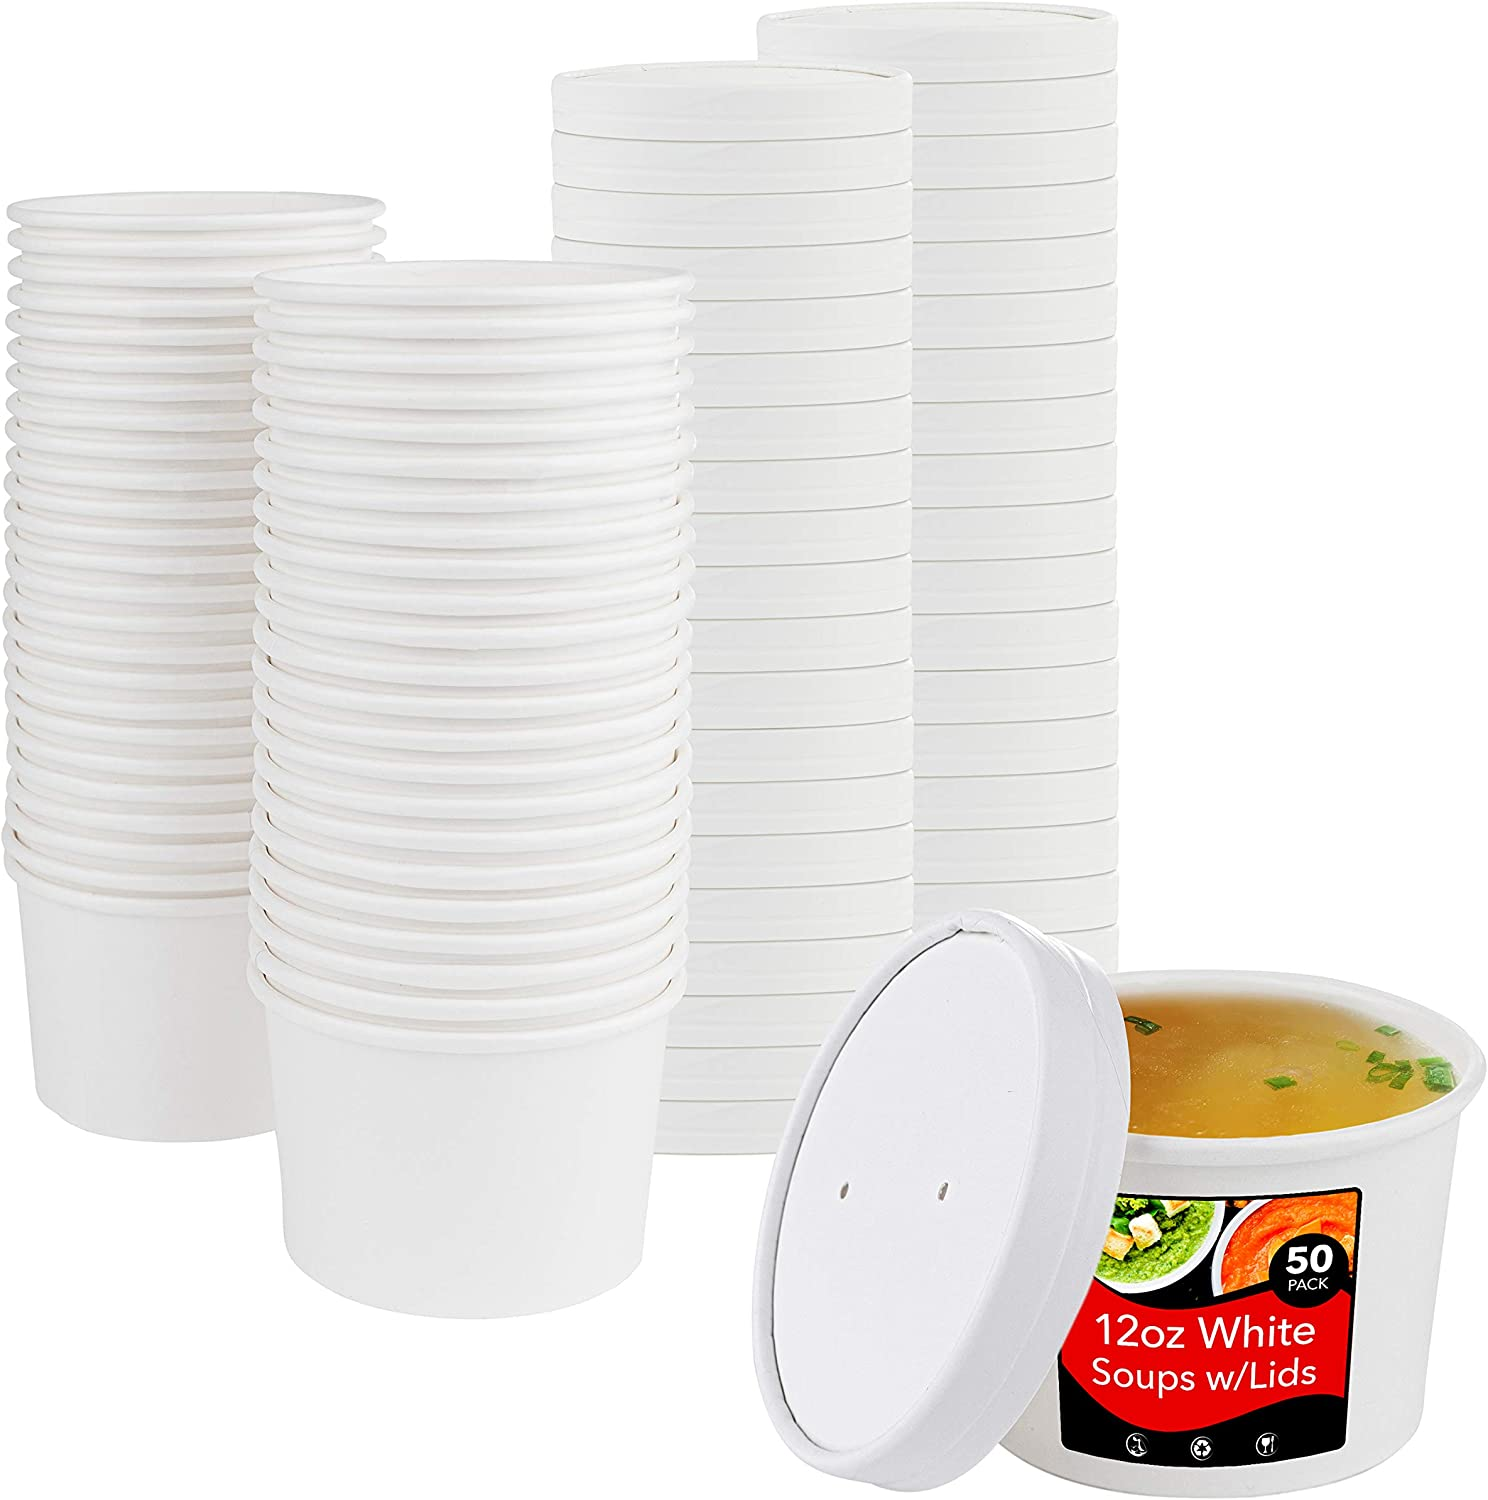 Stock Your Home 12oz White Soup Cups w Lids - 50 count